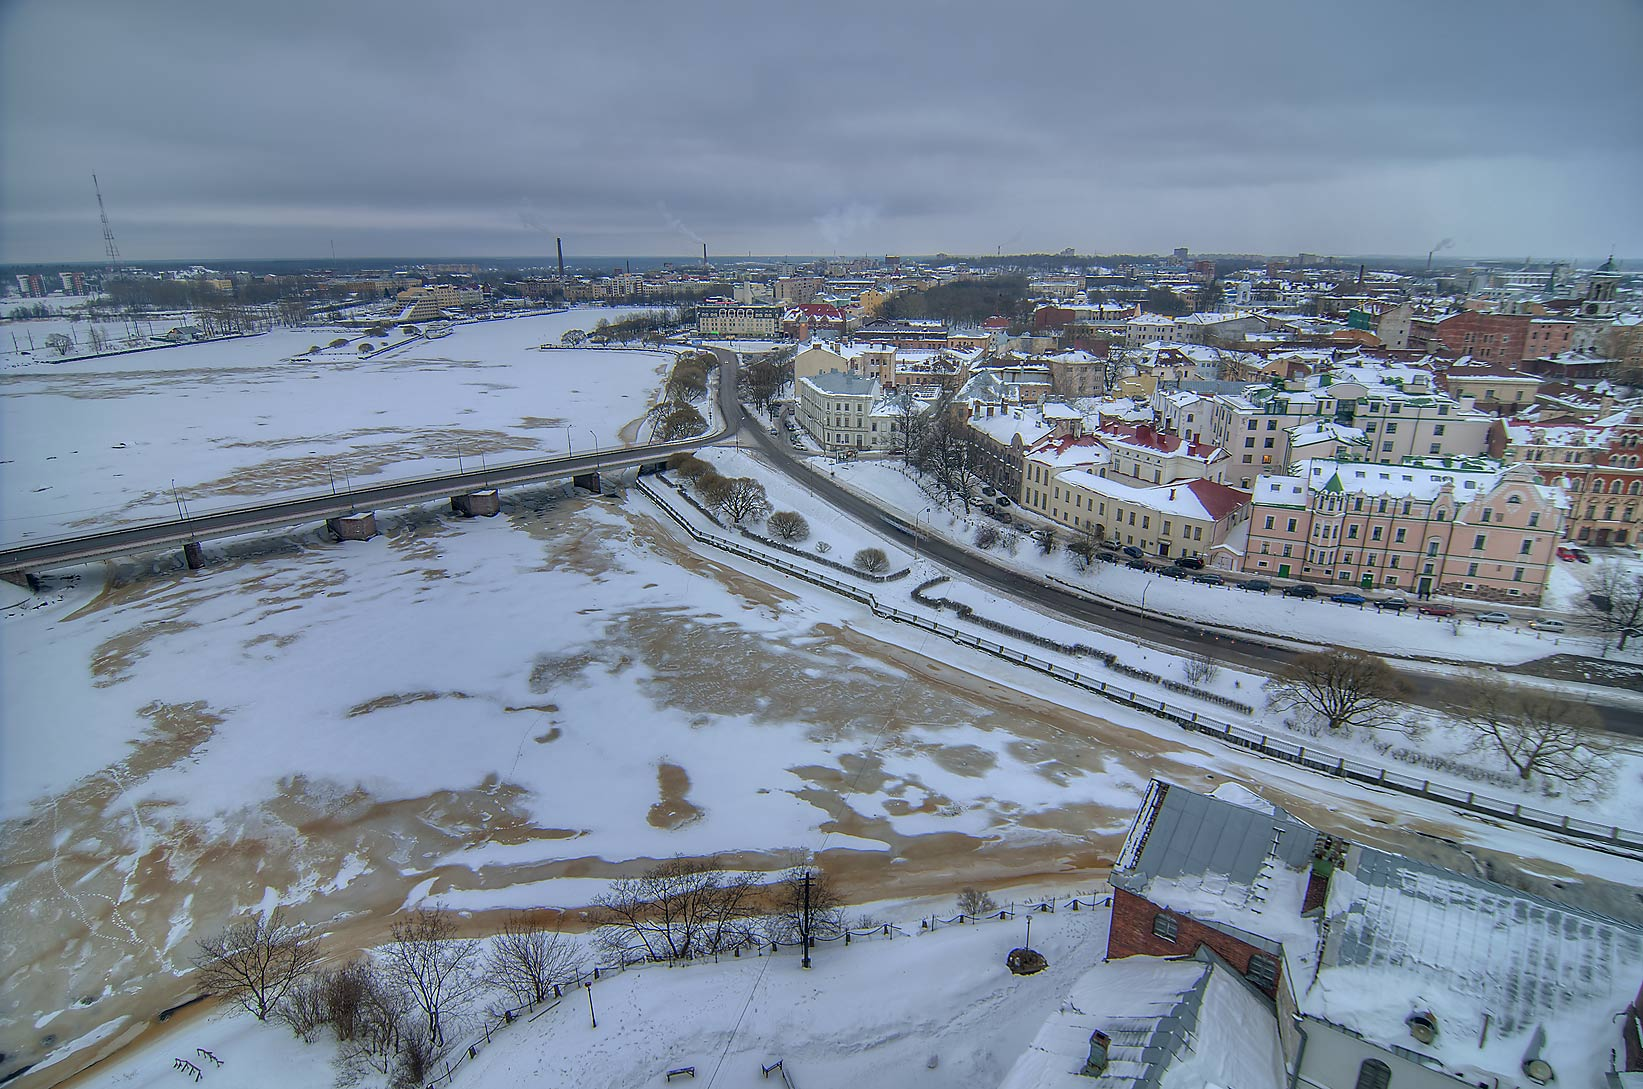 Old city and North Harbor from St. Olaf Tower of Vyborg Castle. Vyborg, Russia